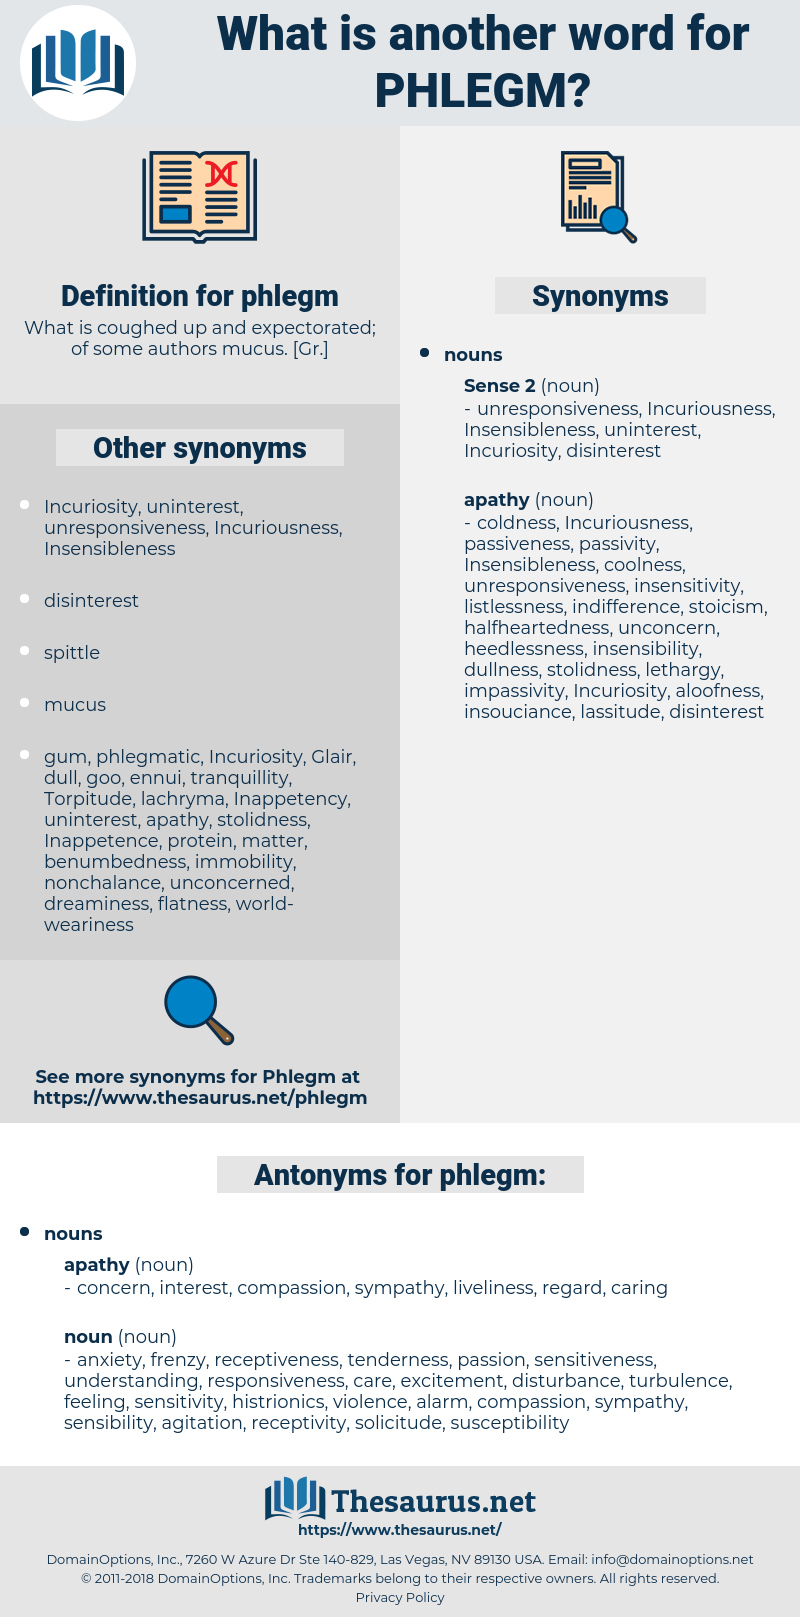 phlegm, synonym phlegm, another word for phlegm, words like phlegm, thesaurus phlegm